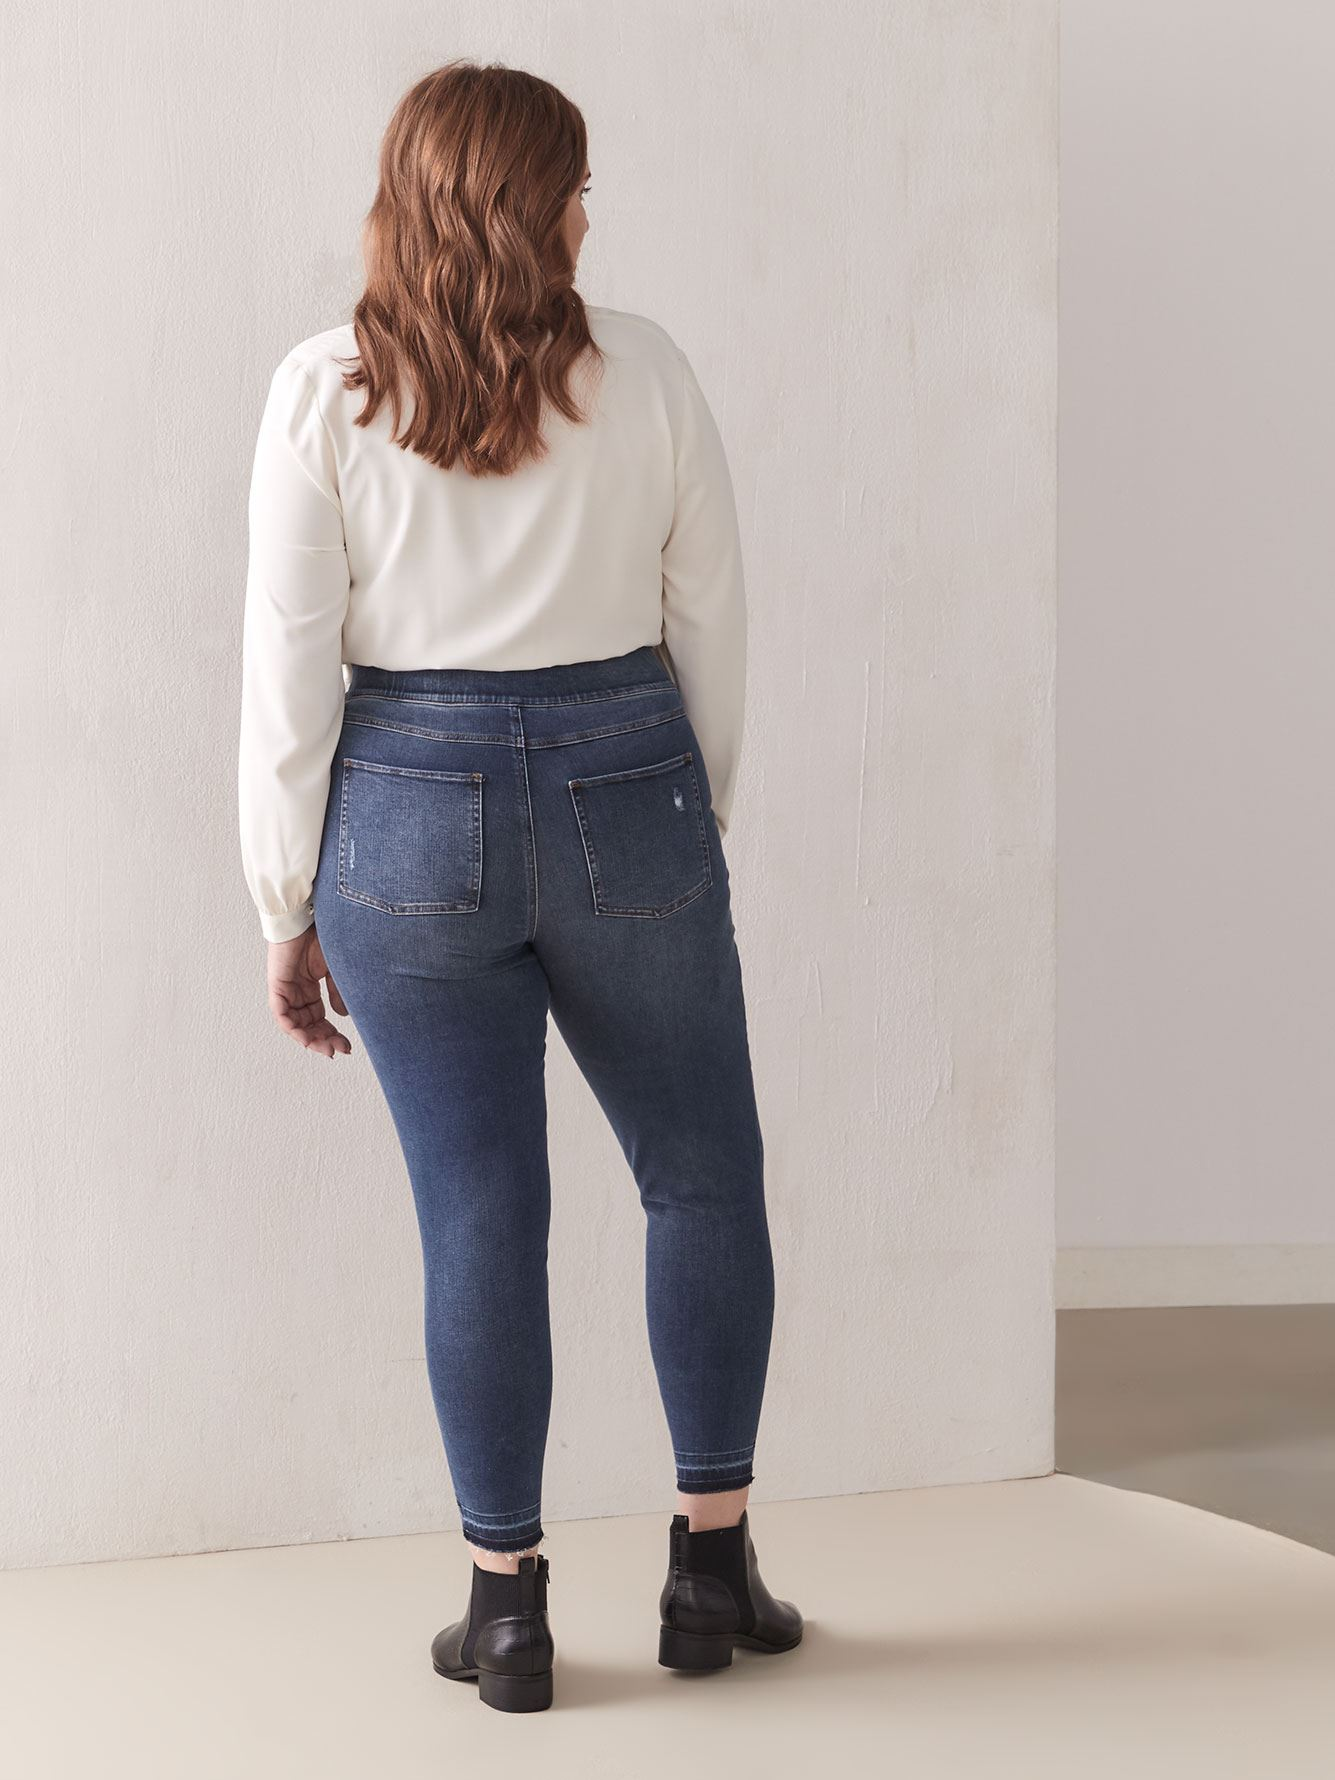 High Waist Denim Leggings - Spanx